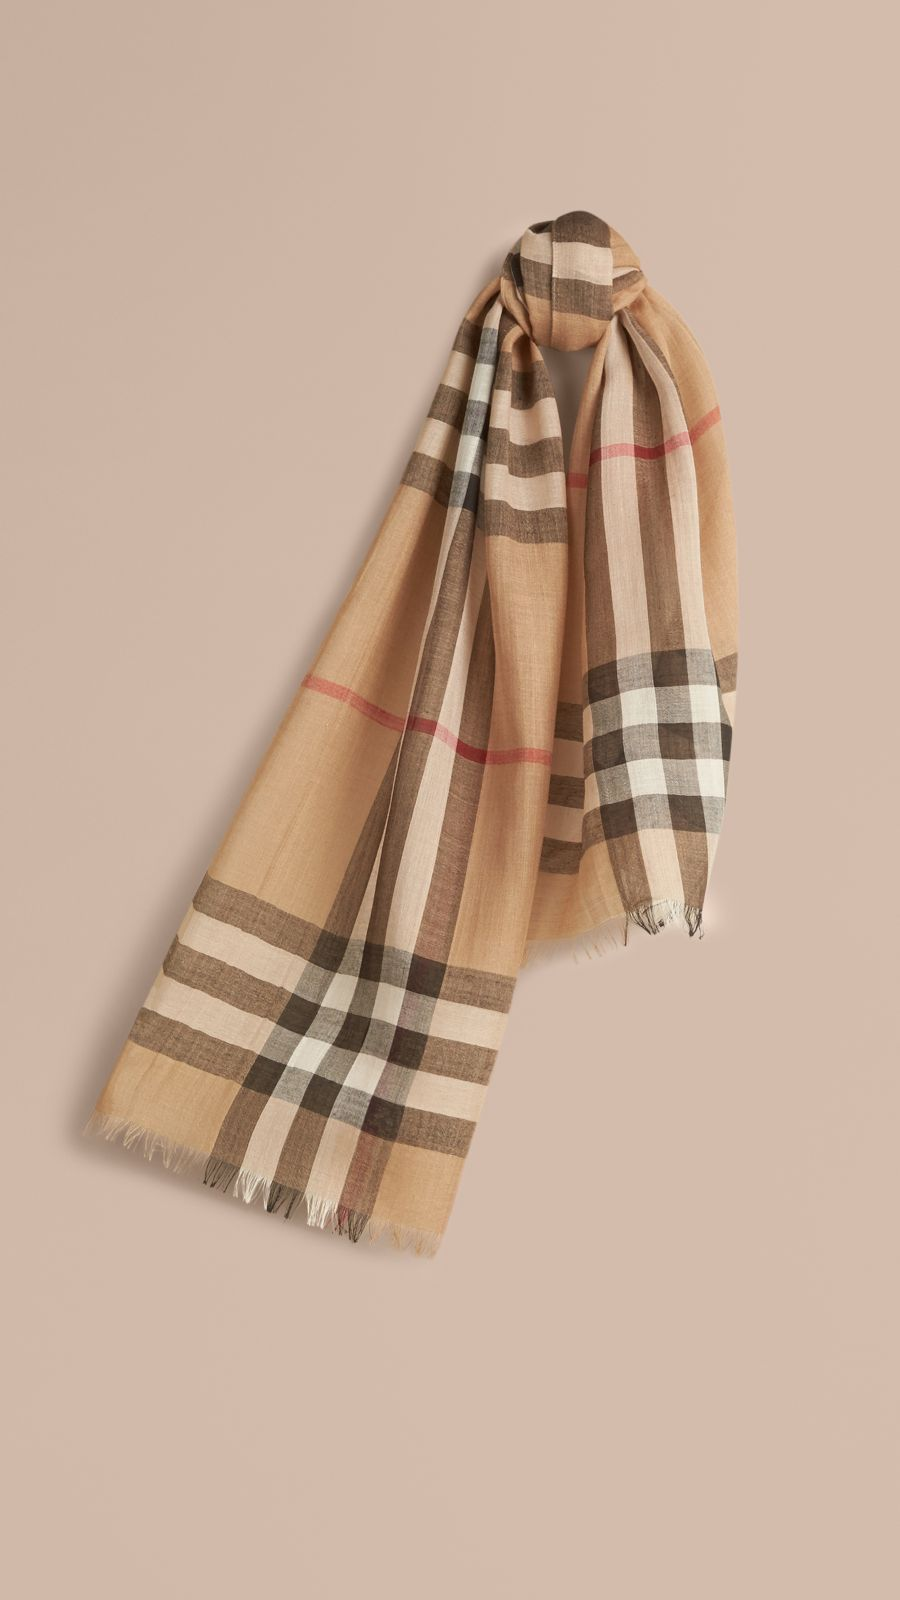 Camel check Exploded Check Wool Silk Scarf - Image 1